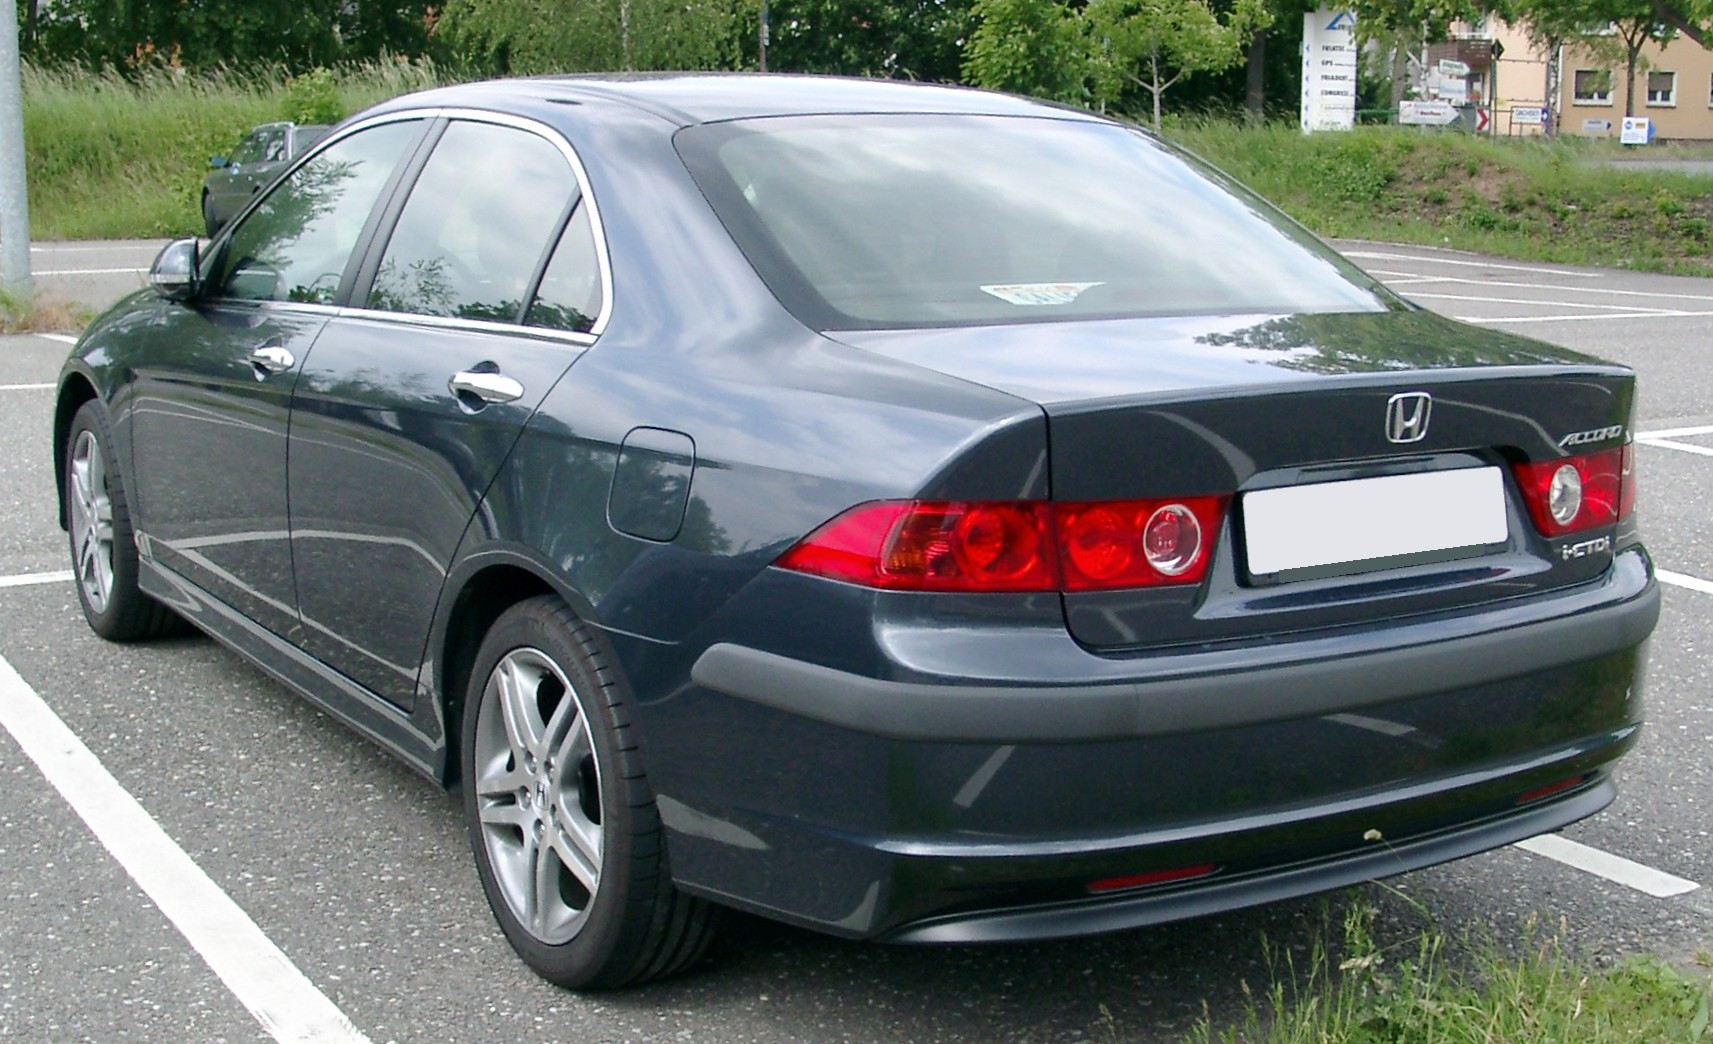 file honda accord rear 20080521     wikimedia commons